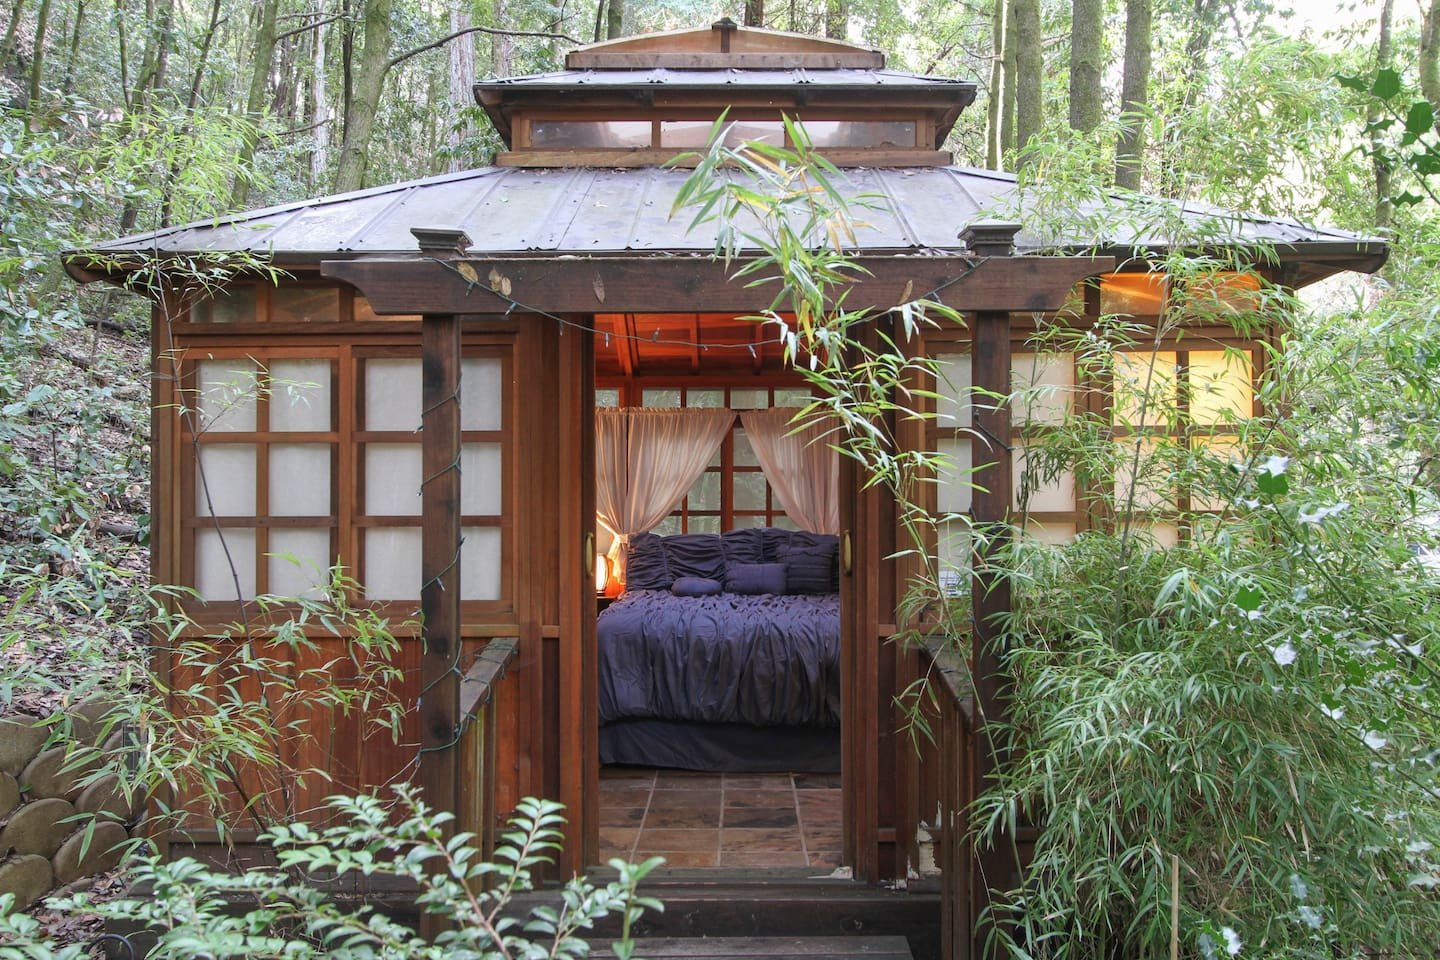 Relax under the Redwoods in the Teahouse!